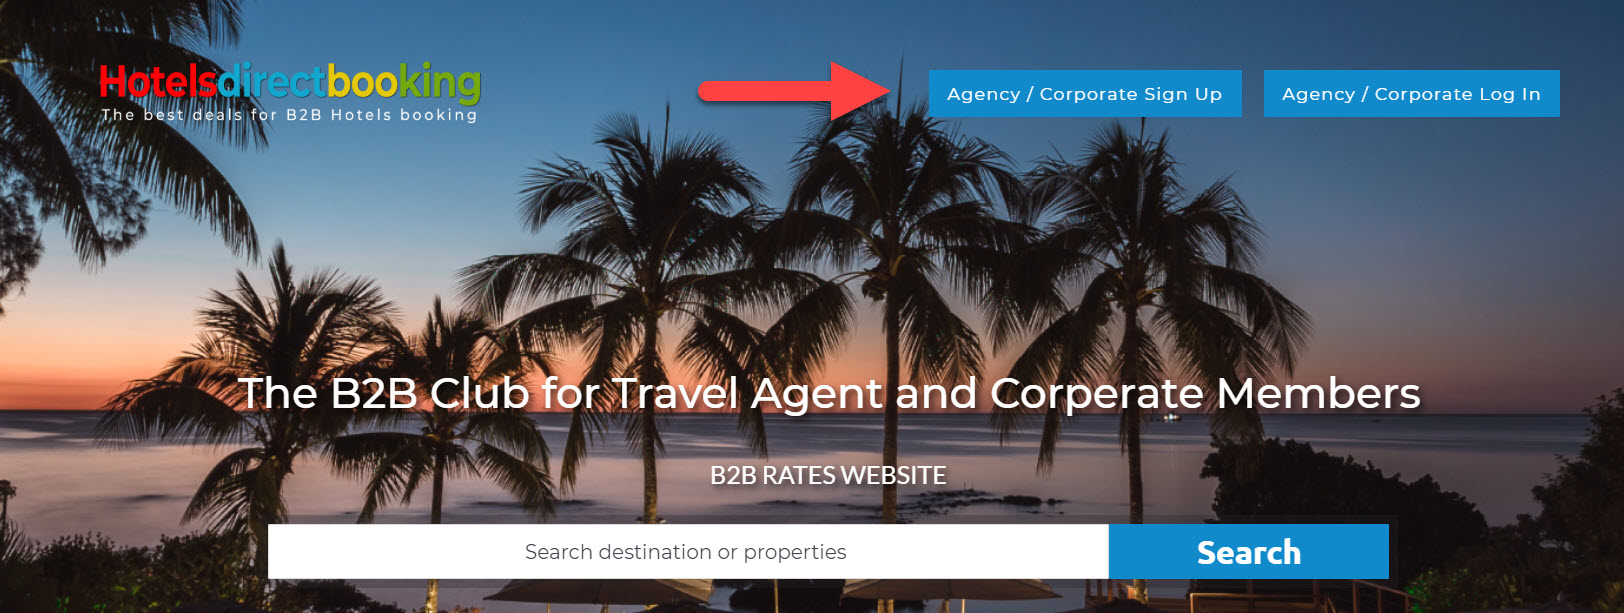 E-Guideline For Travel Agents And Corperate Members